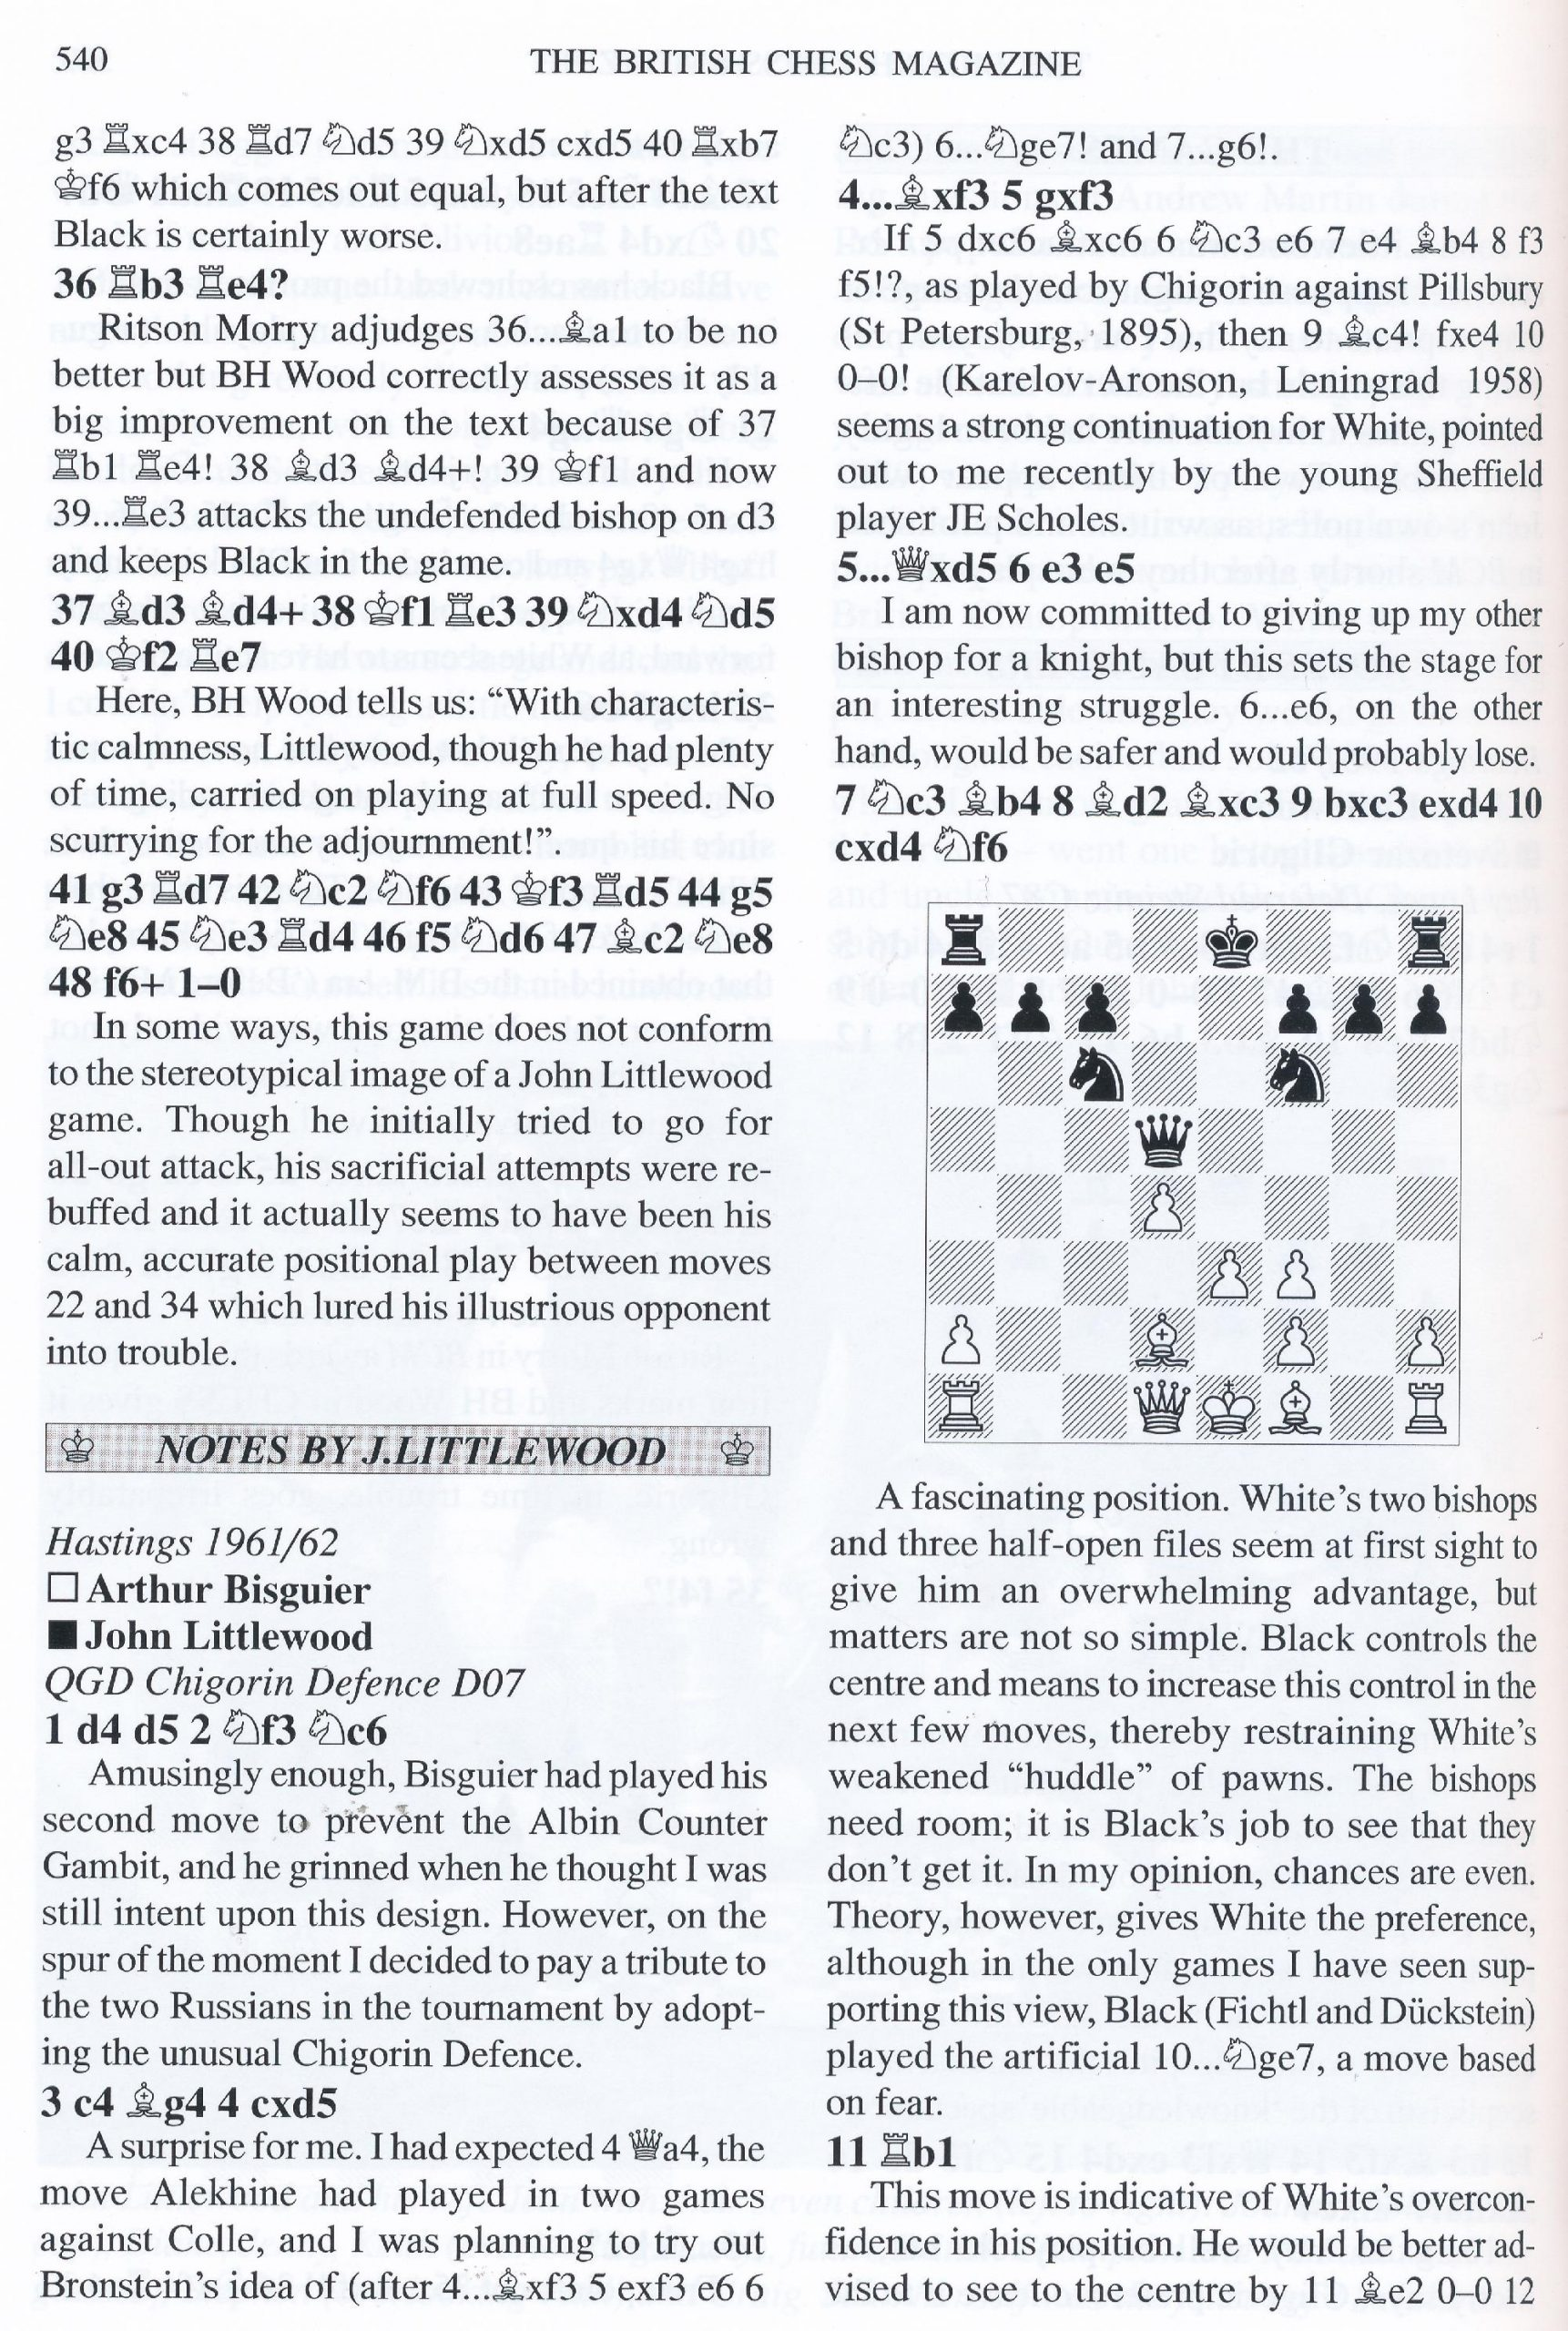 British Chess Magazine, Volume CXXIV (129), 2009, Number 10, October, page 540